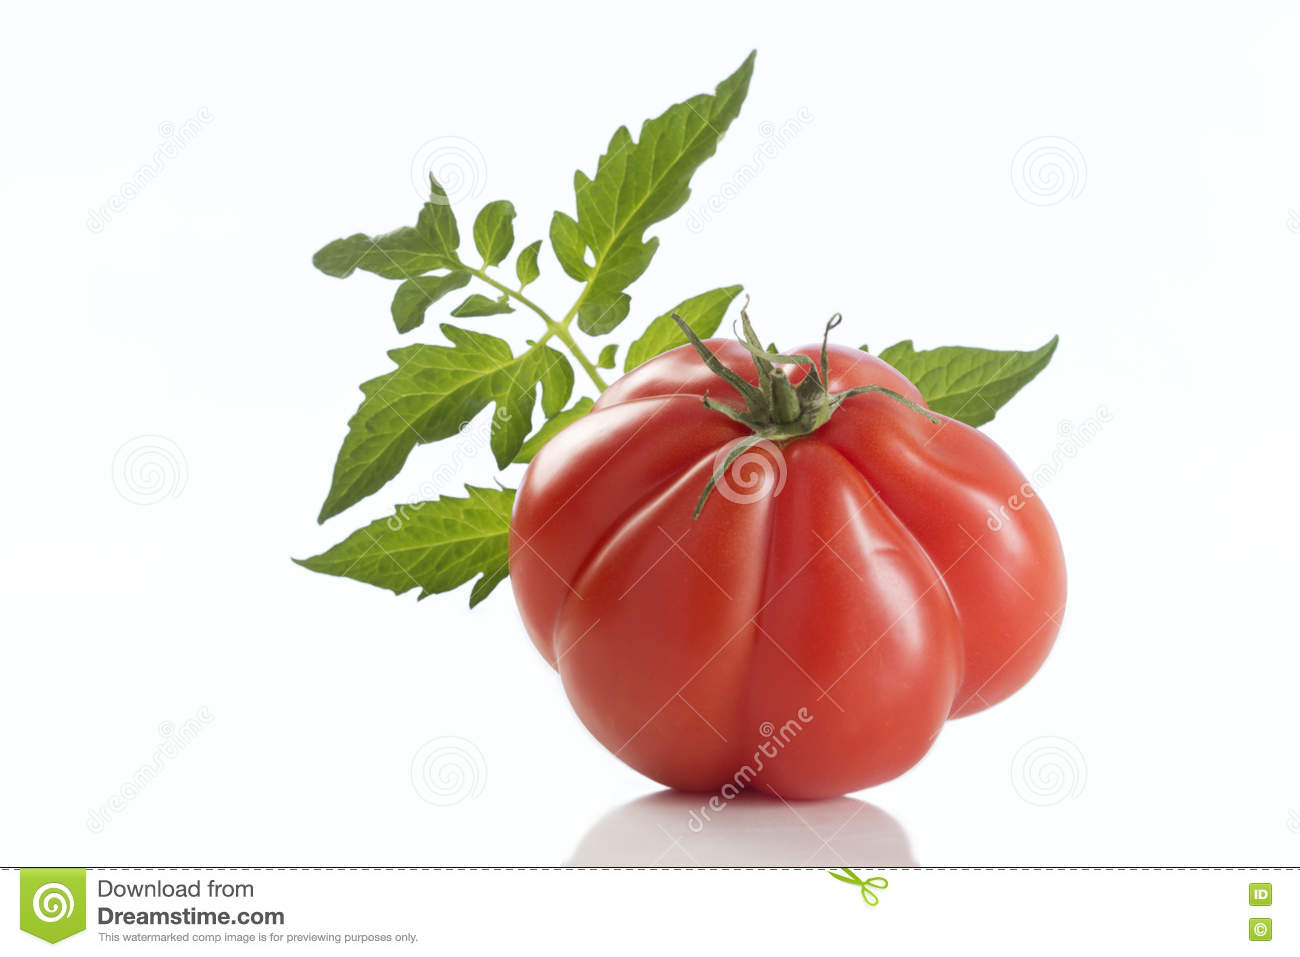 Heirloom Red Tomato, with leaf